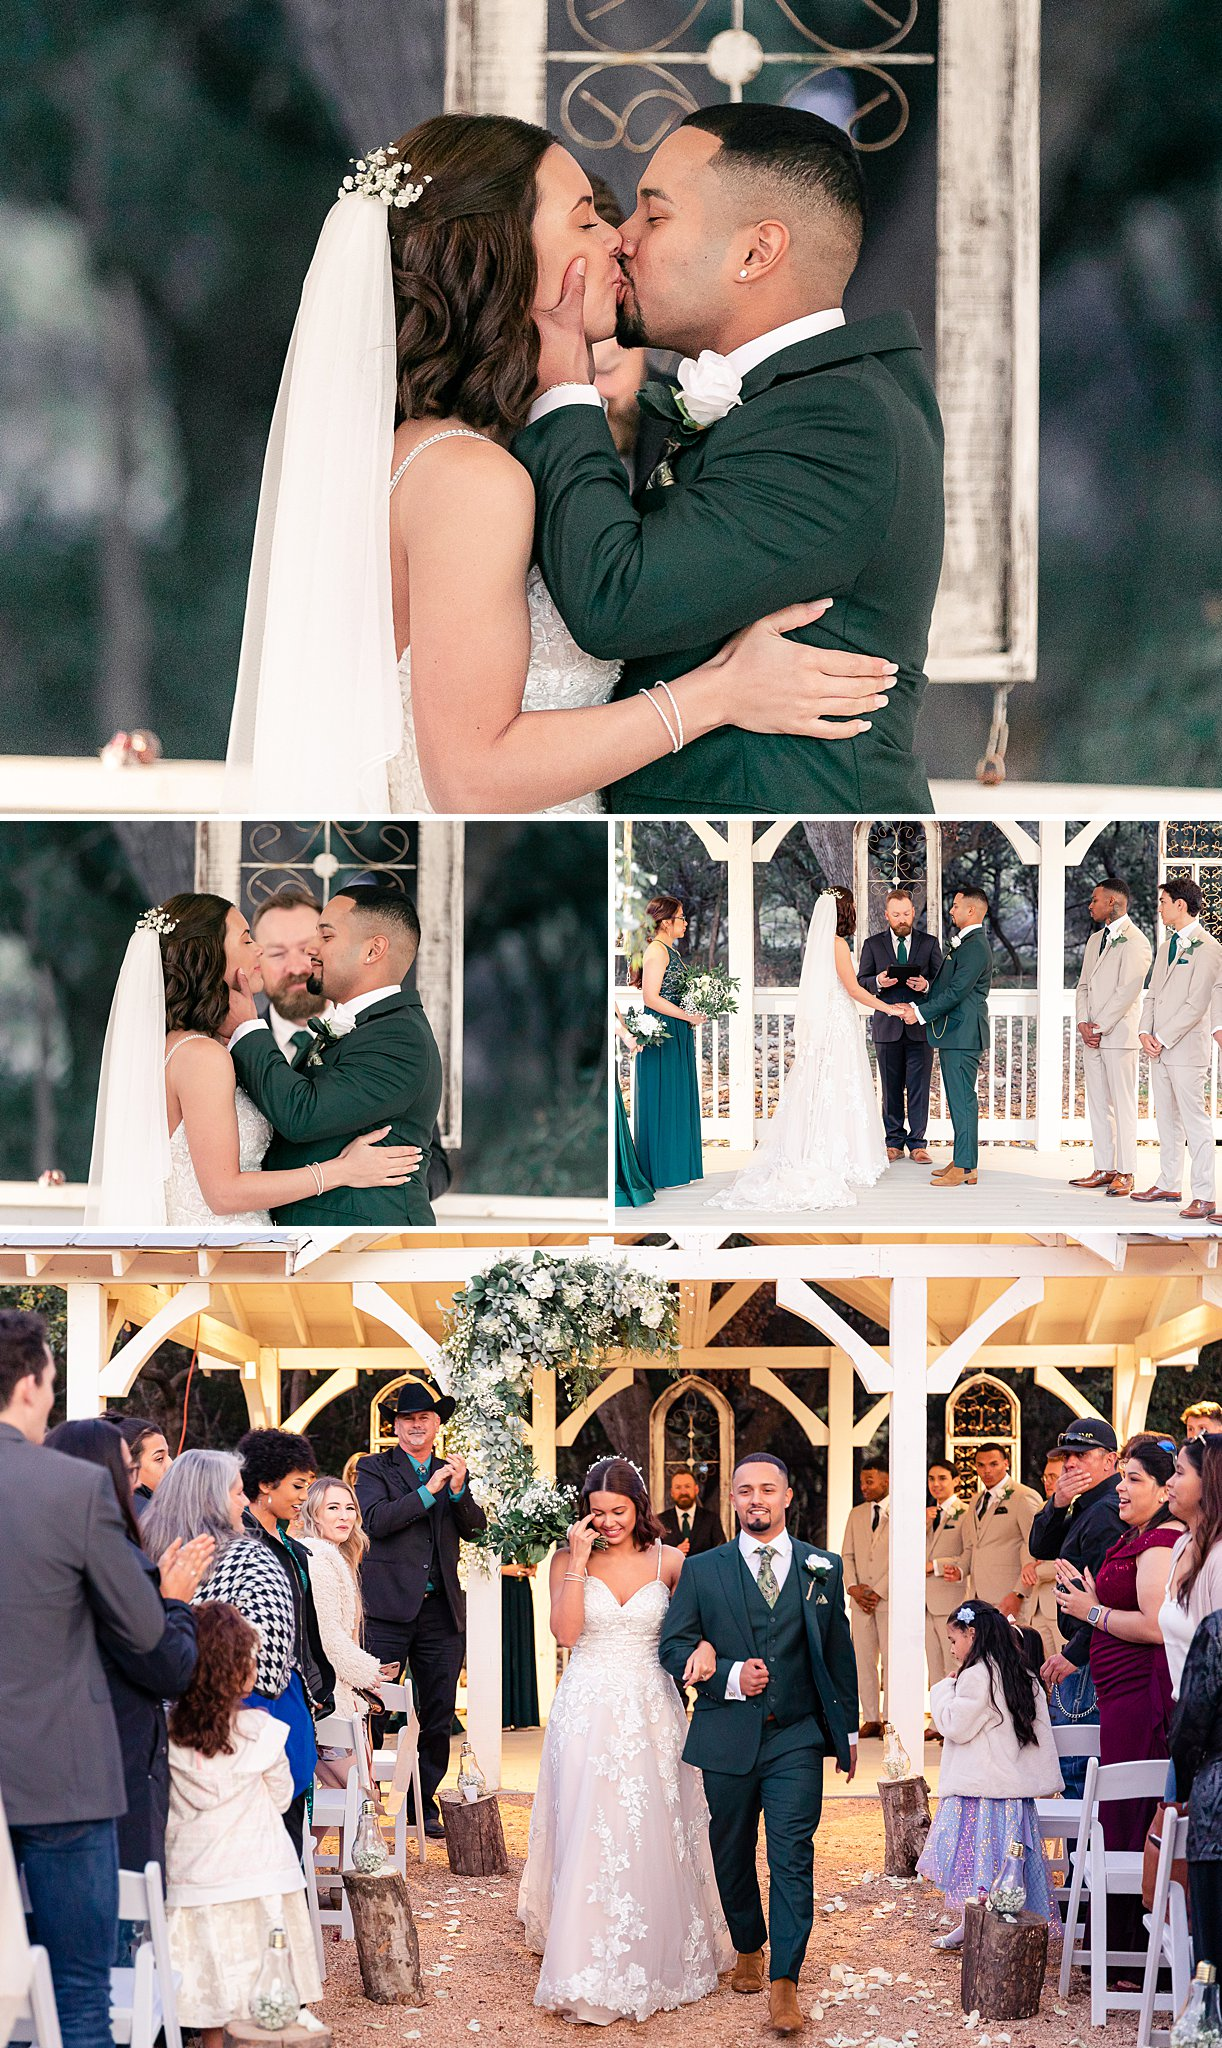 Carly-Barton-Photography-Texas-Wedding-Photographer-Western-Sky-Wedding-Event-Venue-Emerald-Green-Theme_0026.jpg